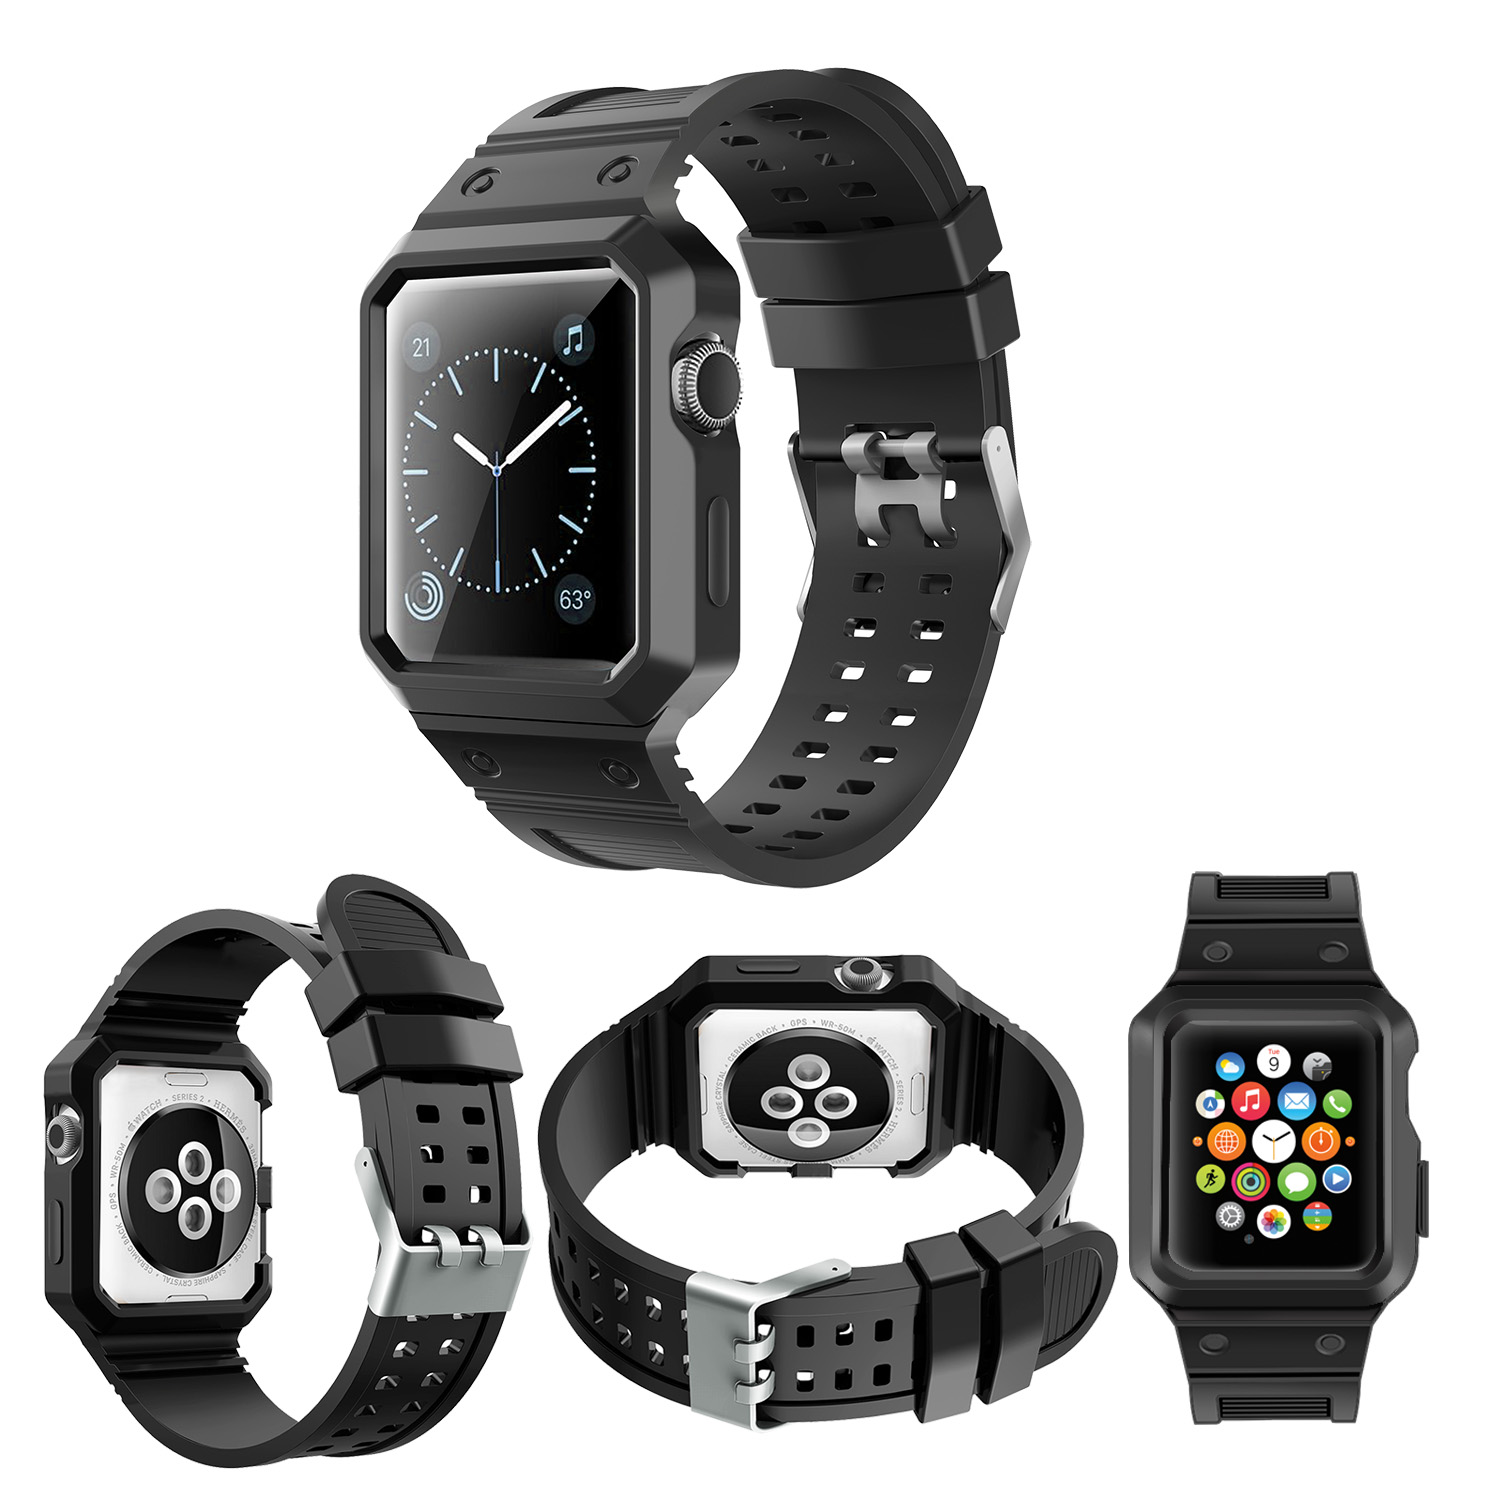 Top Selling Silicone Rubber Wrist Band For Apple iWatch 38mm 40mm 42mm 44mm